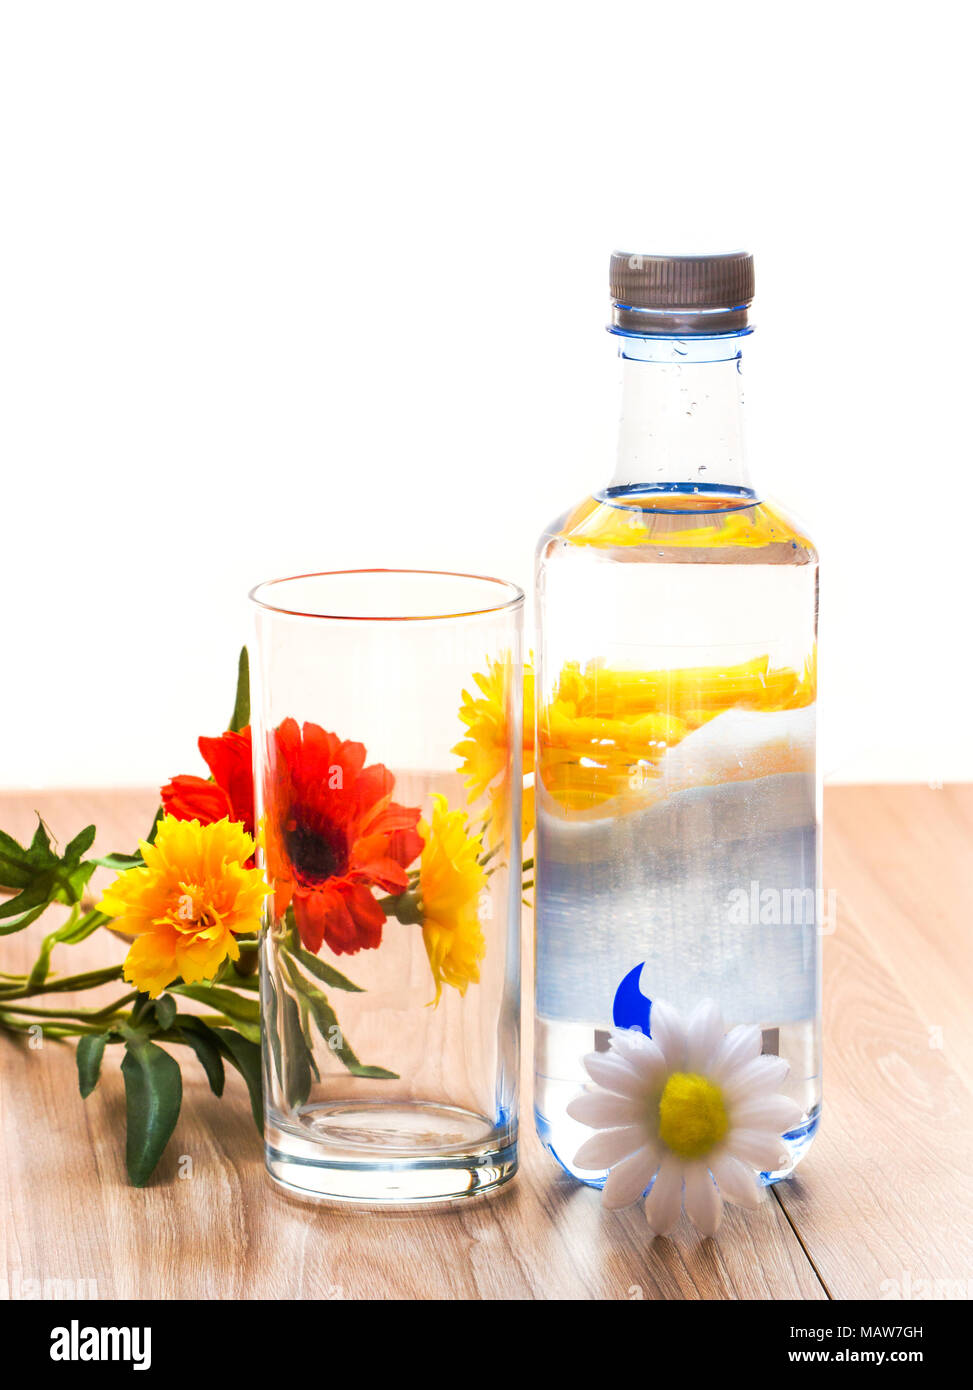 Water bottle mineral and glass of water and colorful flowers on wood table in bright day in concept drinking healthy, health care background - Stock Image